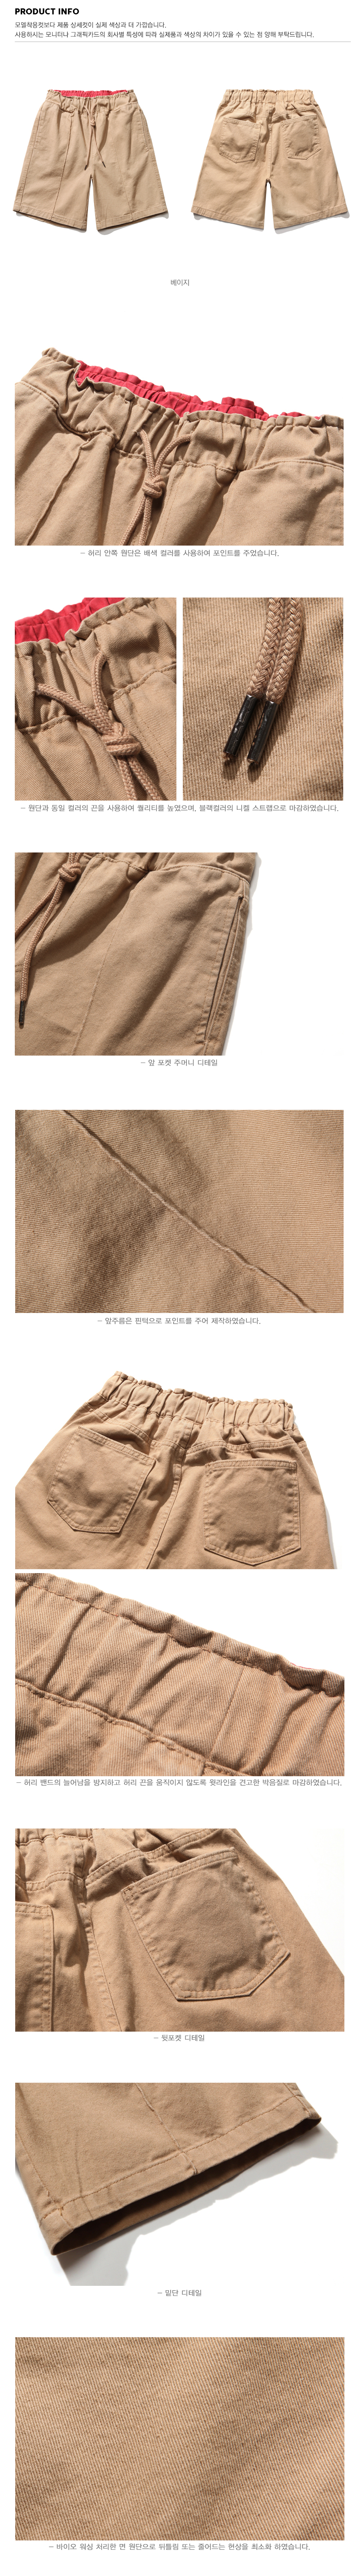 20180518_bio_washing_short_pants_detail_beige_kj.jpg